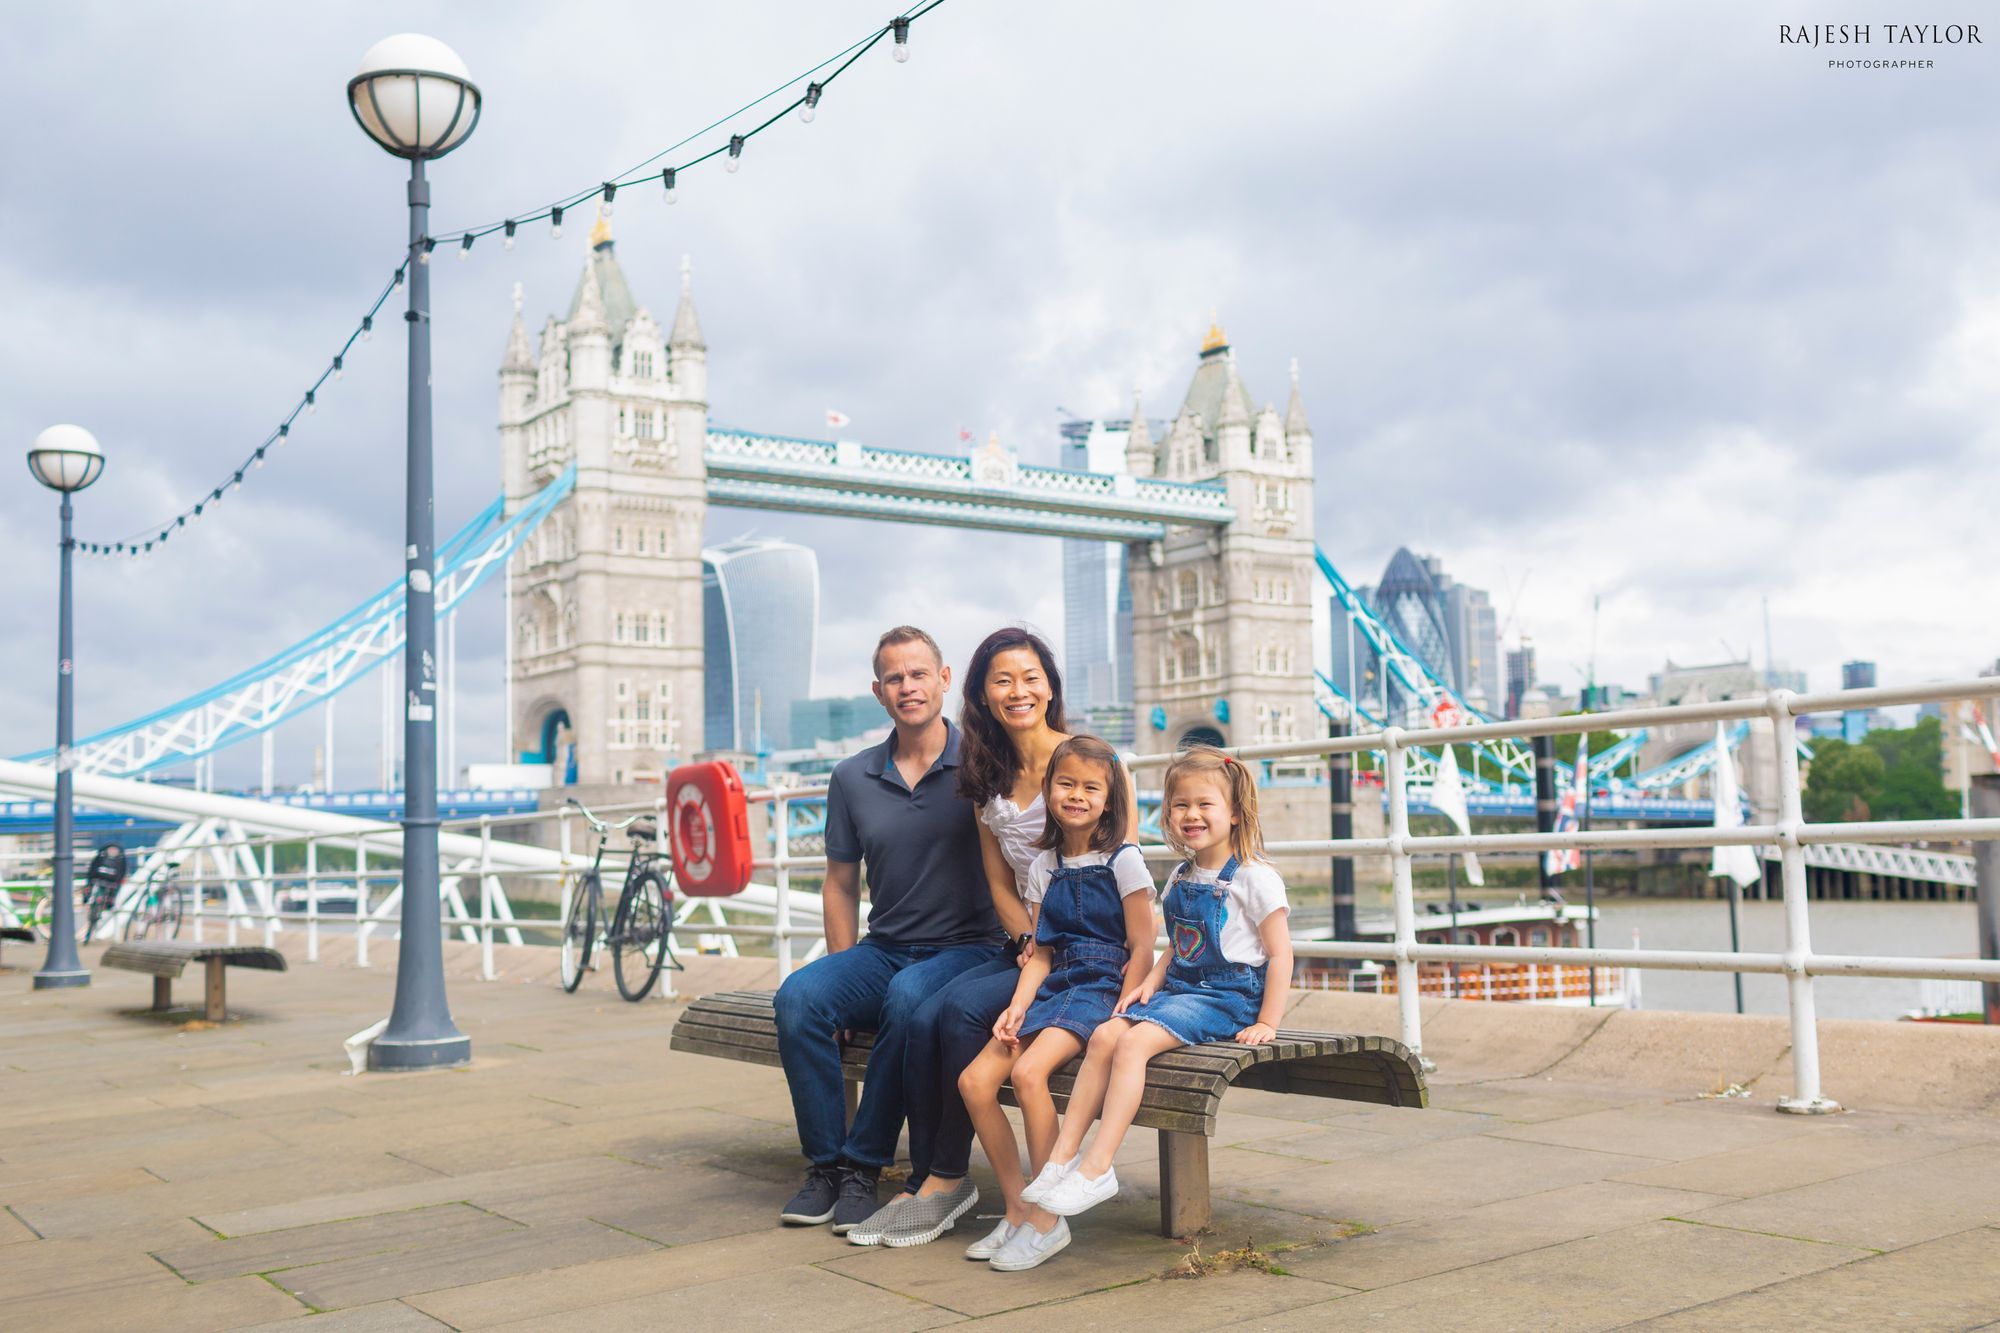 Dr Who Family Adventures by Butler's Wharf Pier © Rajesh Taylor